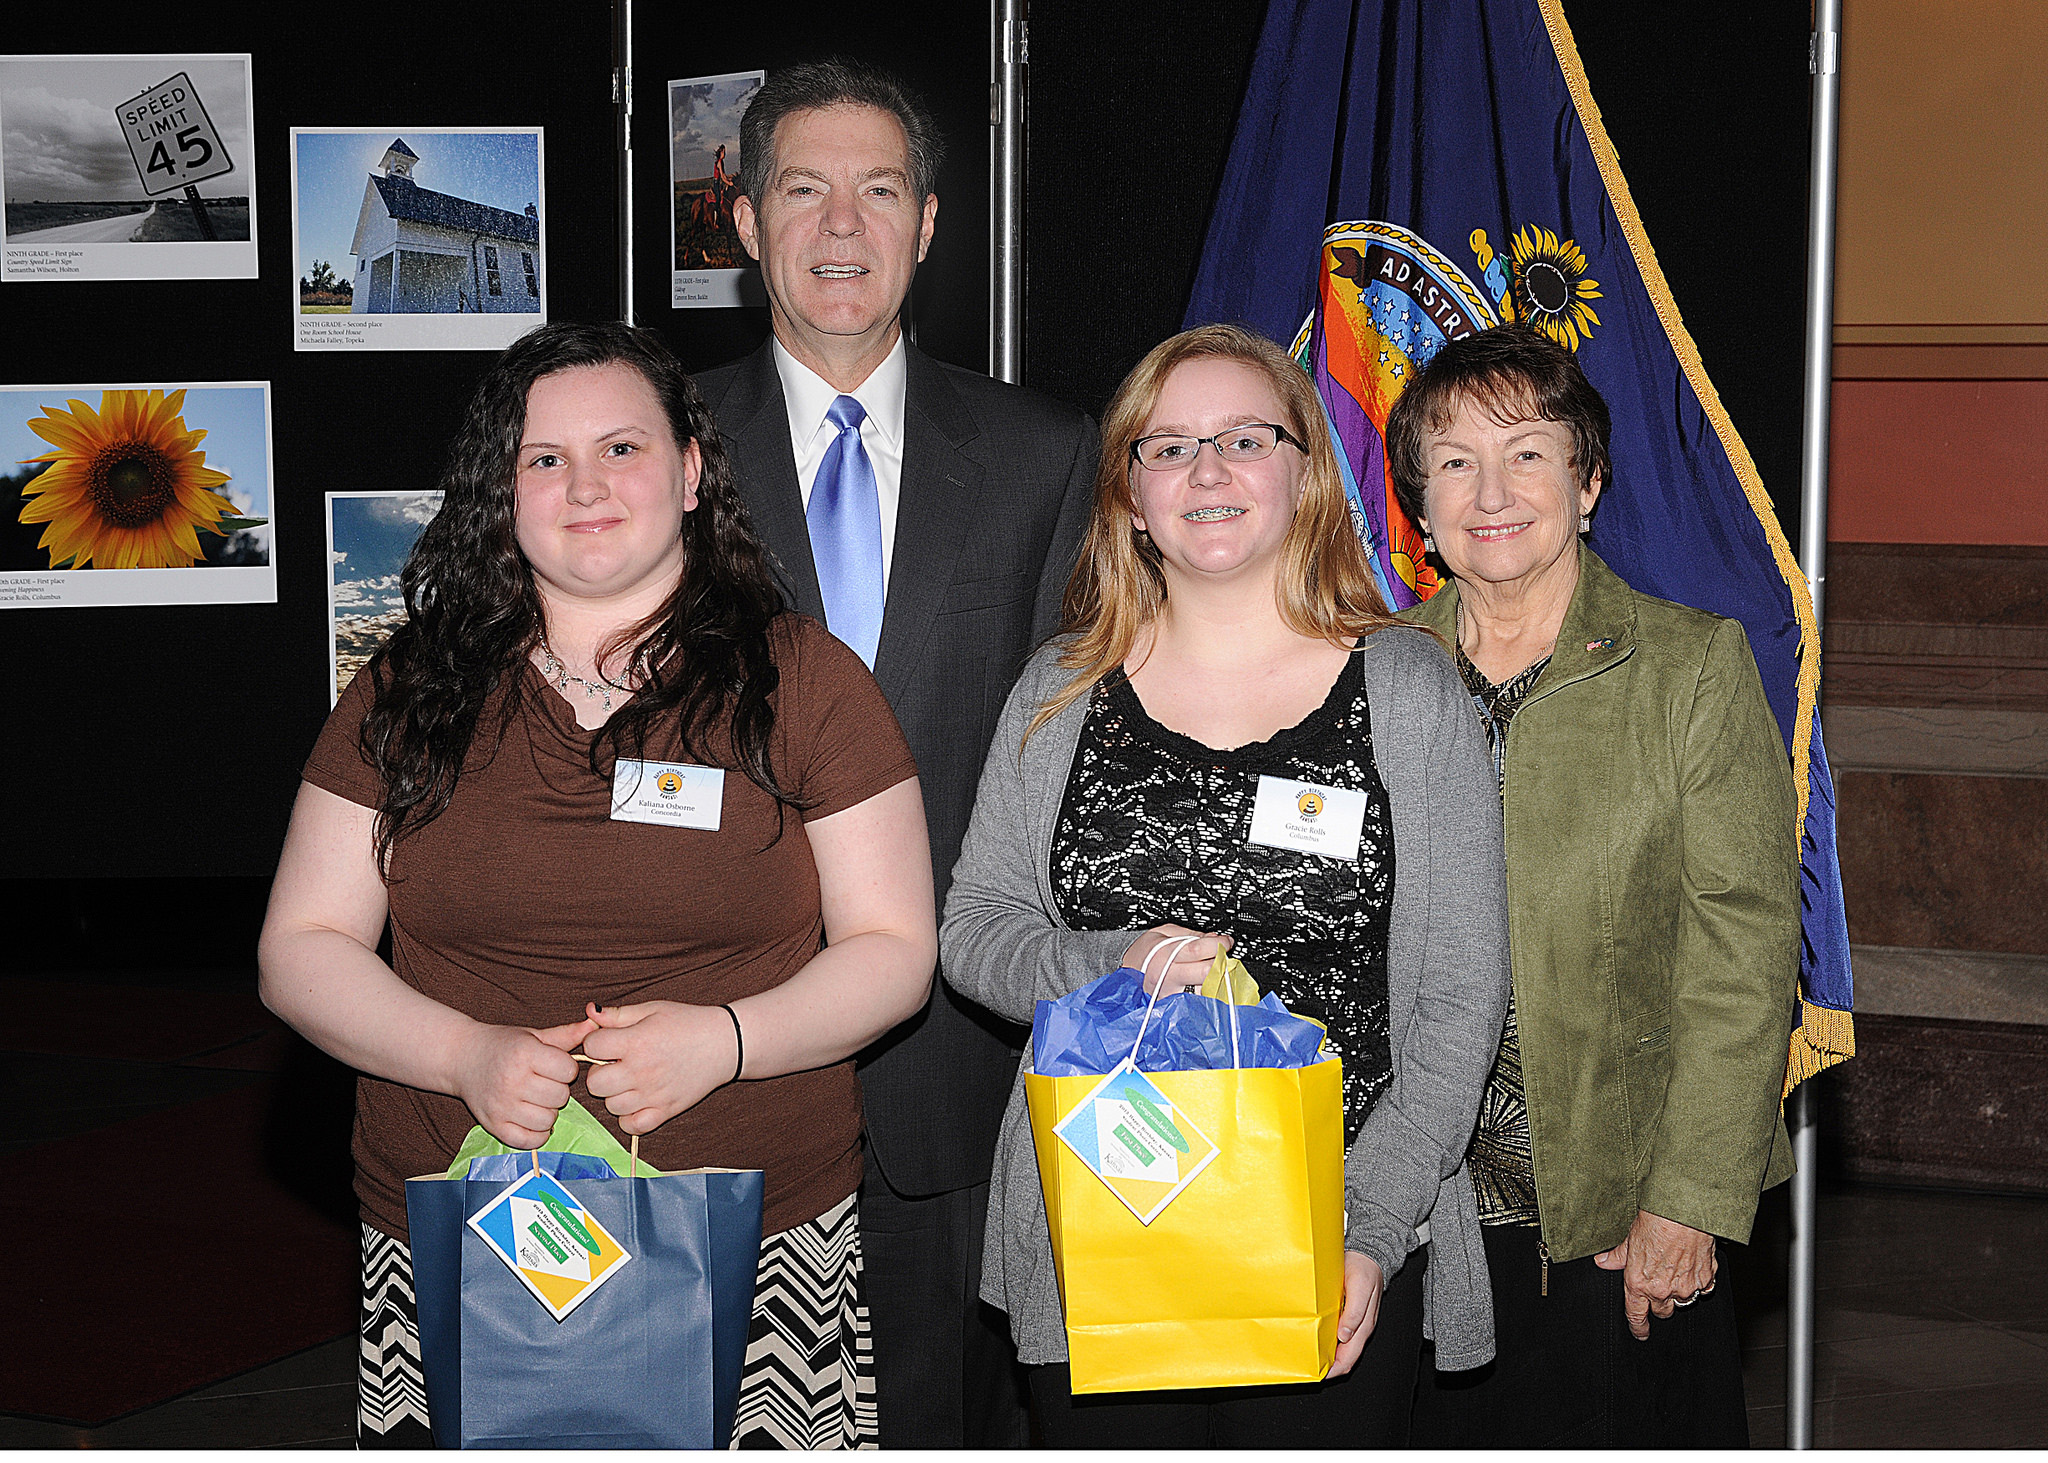 10th grade winners Kaliana Osborne and Gracie Rolls with Governor Sam Brownback and Marearl Denning